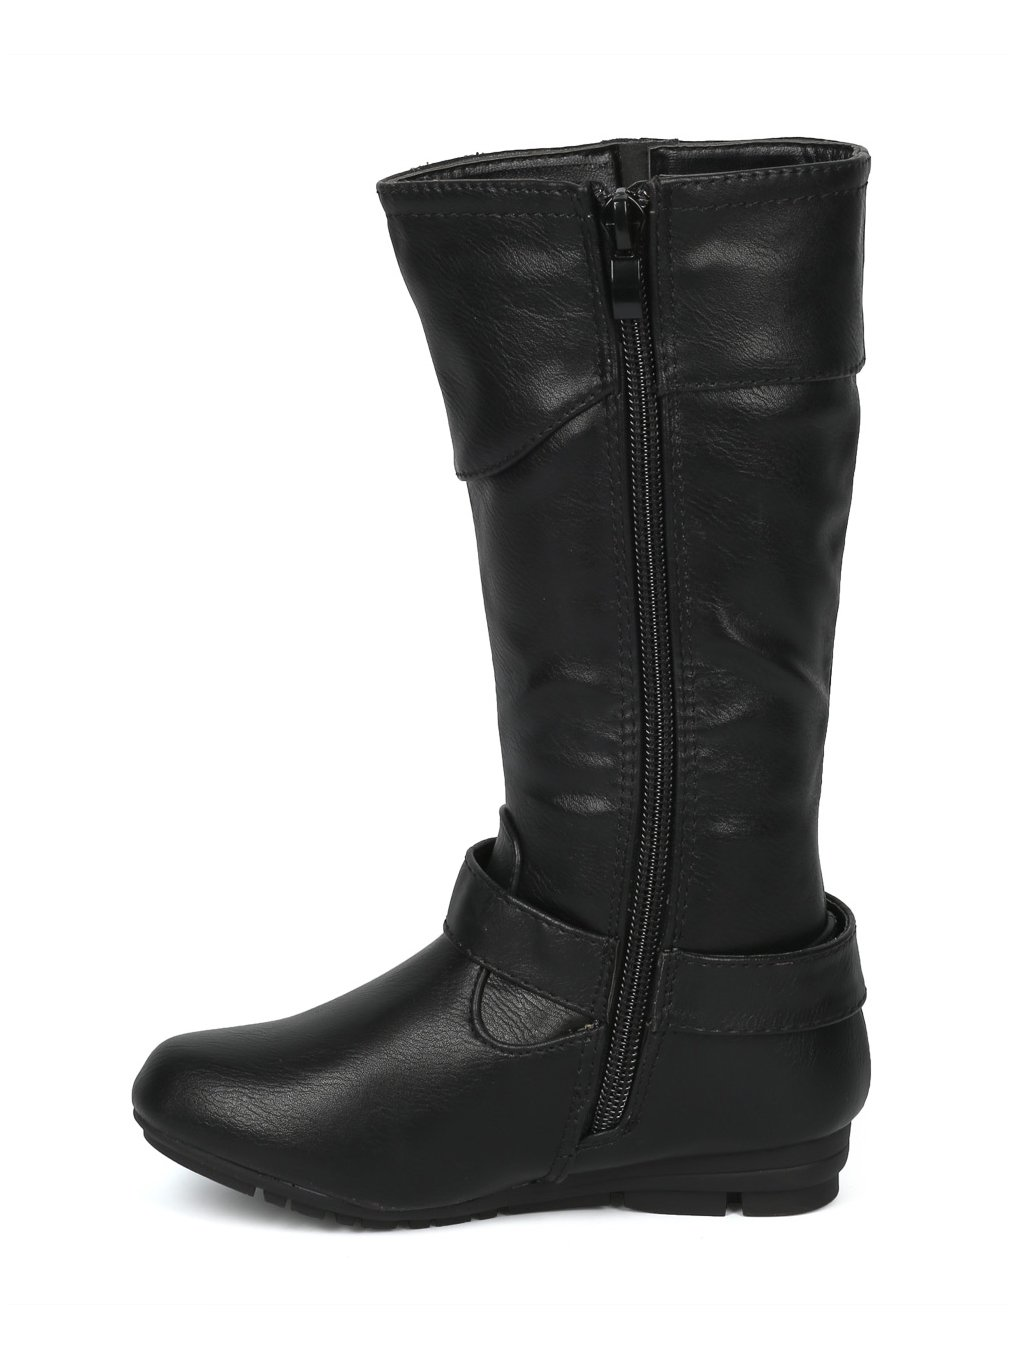 Alrisco Girls Leatherette Buckled Tall Riding Boot HF94 - Black Leatherette (Size: Little Kid 11) by Alrisco (Image #4)